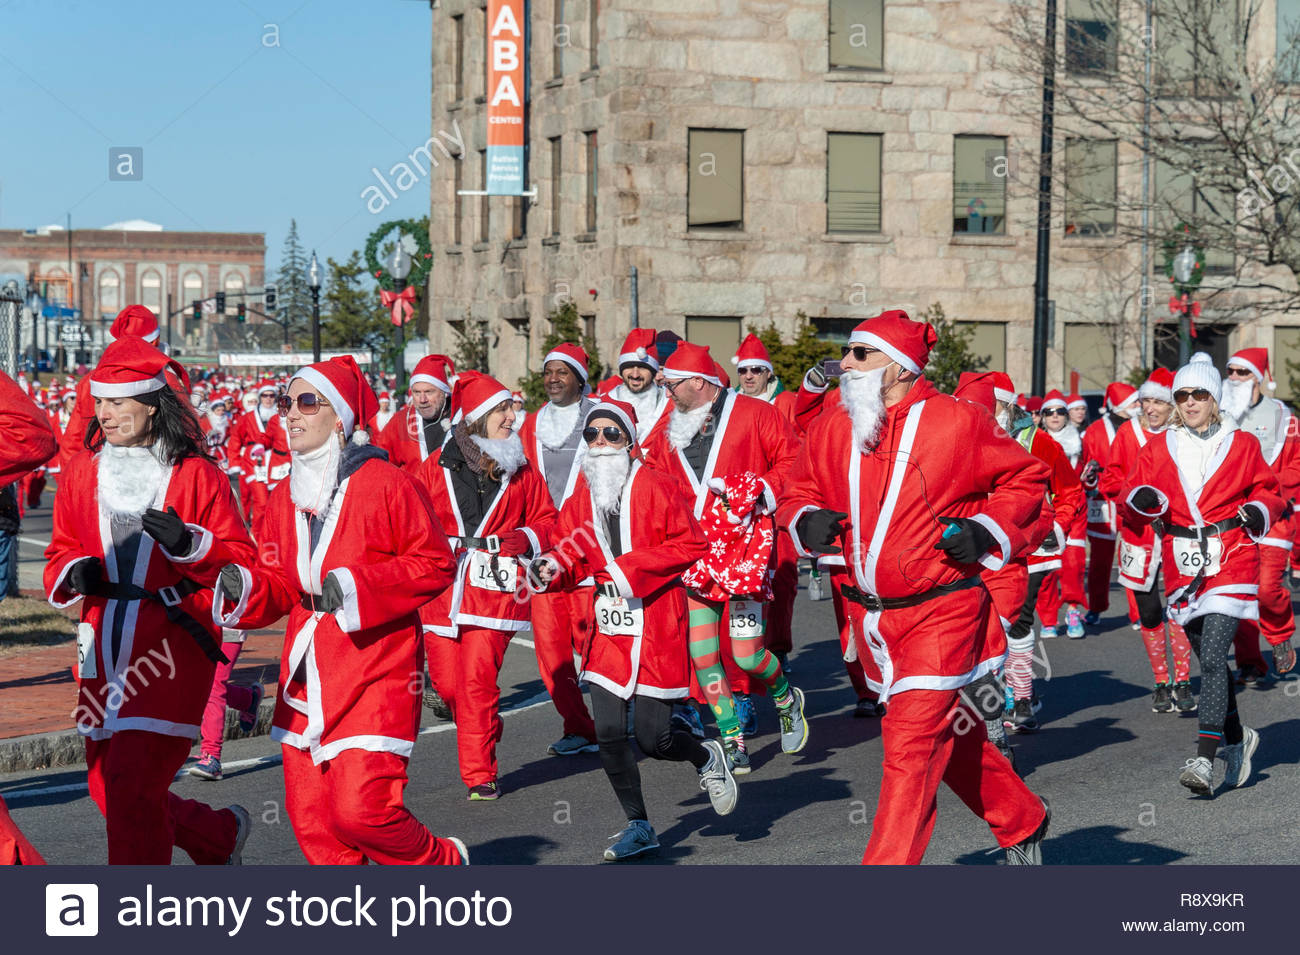 New Bedford, MA, USA - December 8, 2018: Santa with trim beard and aviator sunglasses perfect for sunny but chilly race at Santa Sightings 5K Fun Run - Stock Image